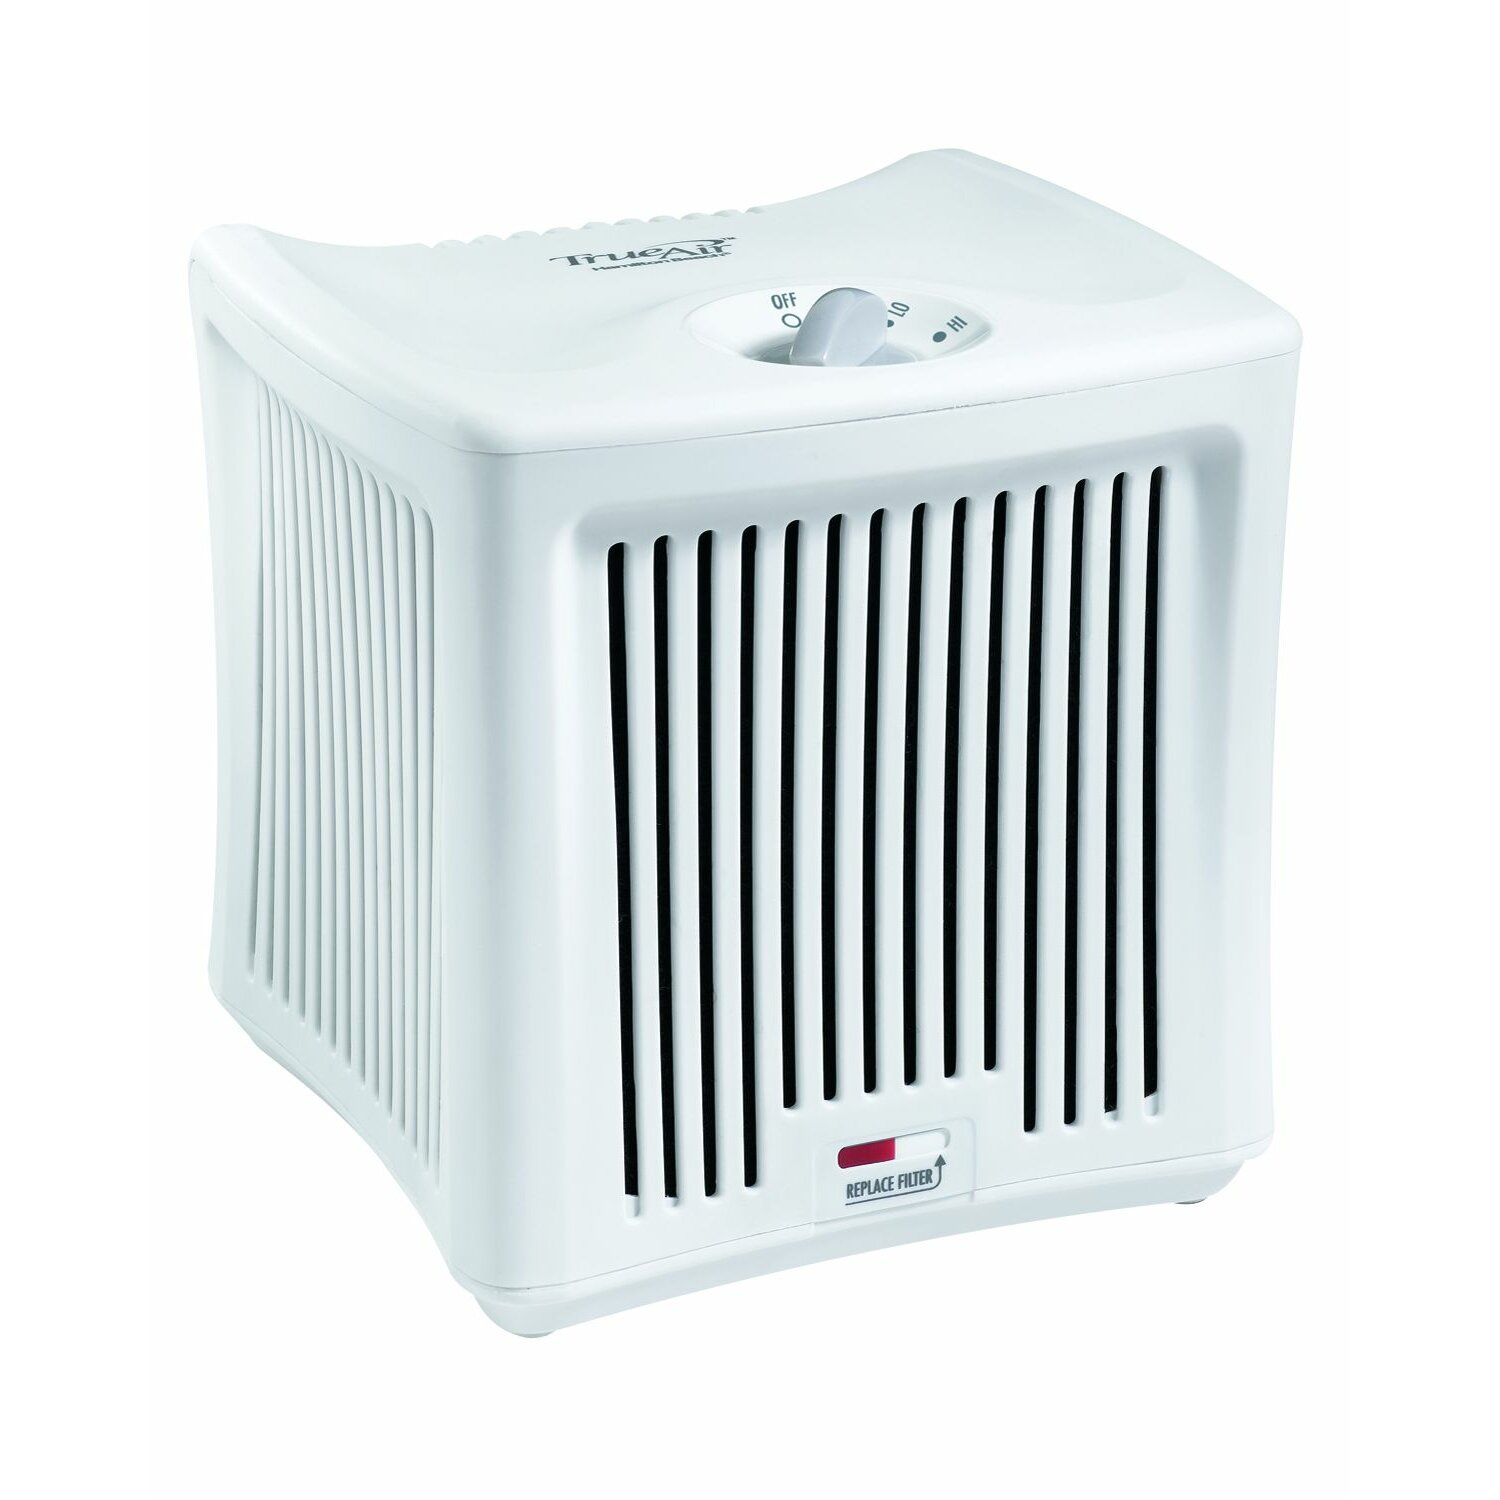 Hamilton beach truair room air purifier with odor for Bedroom air purifier